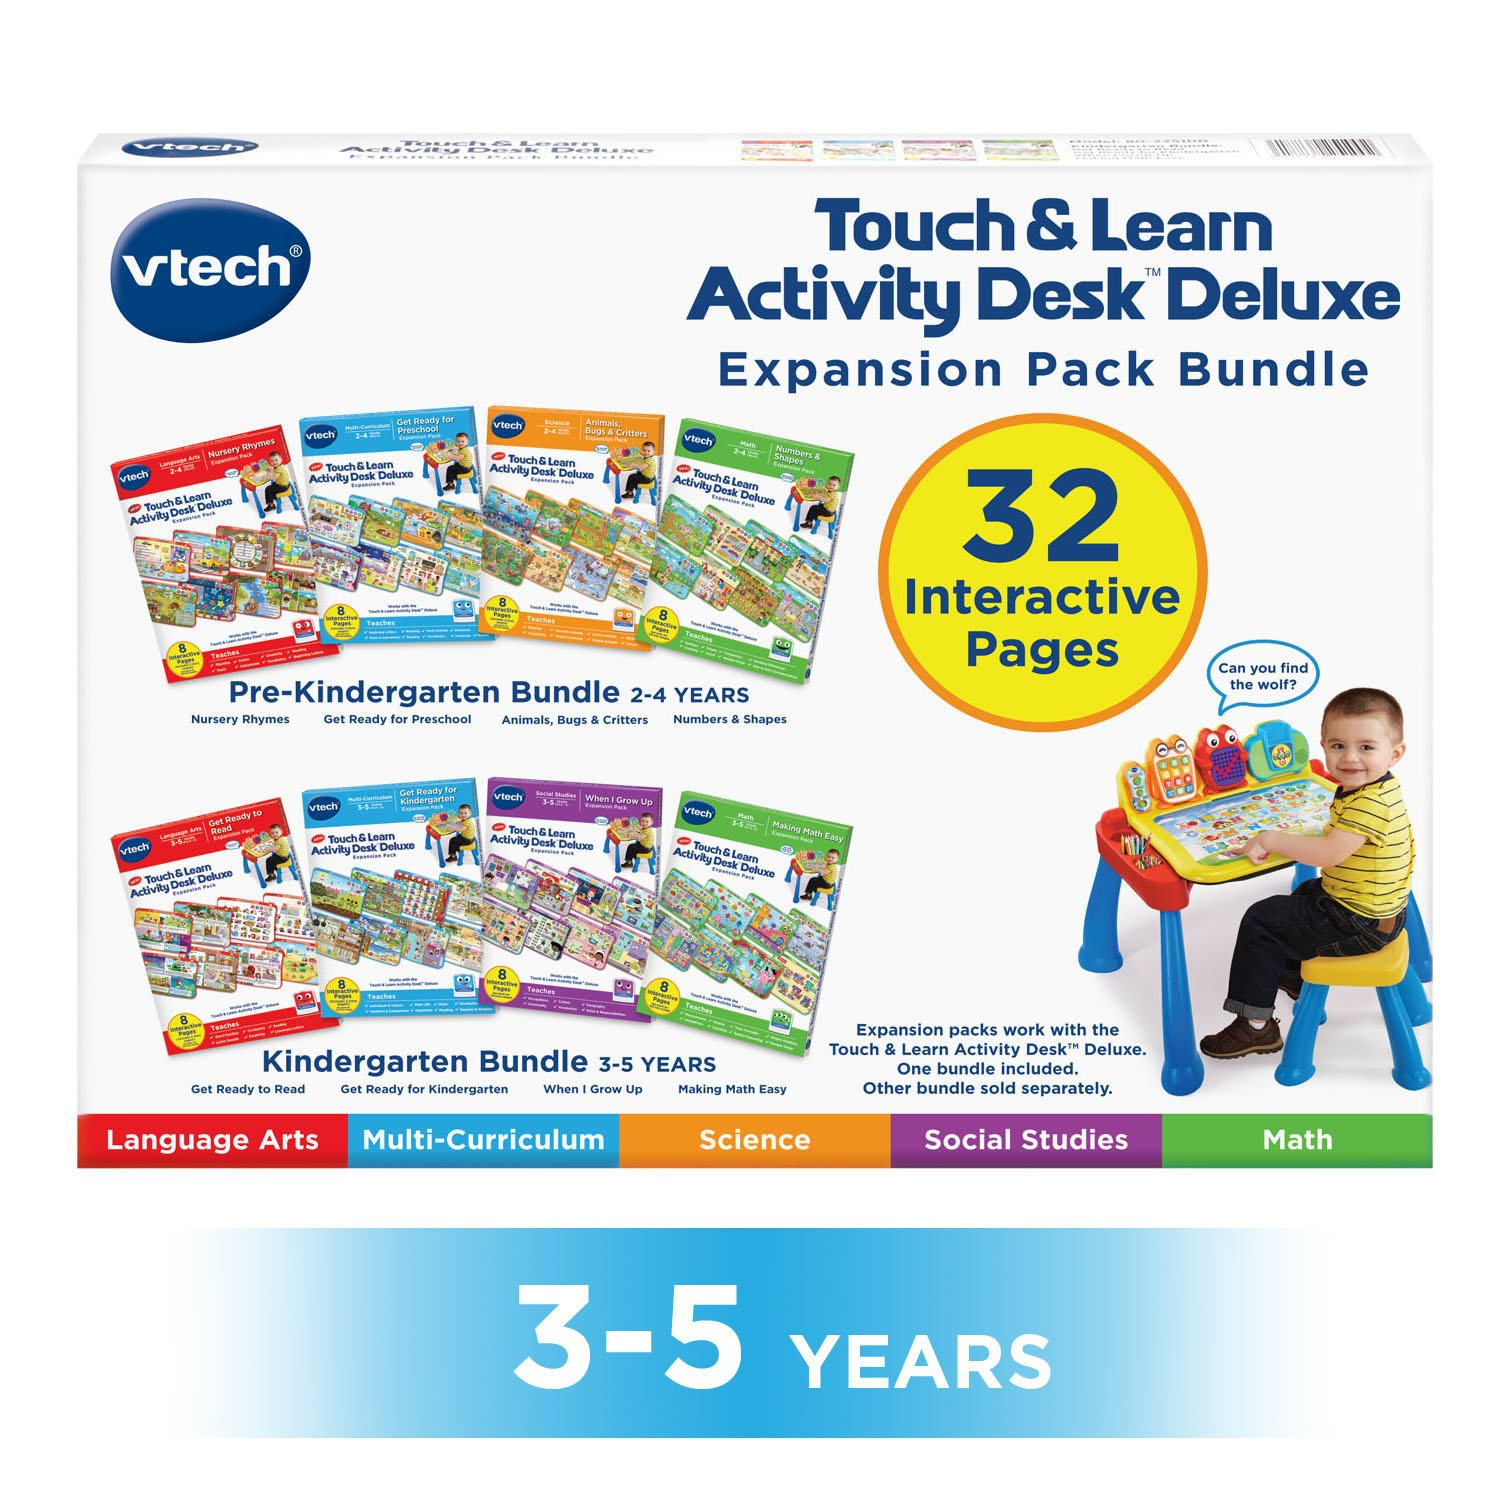 VTech Touch and Learn Activity Desk Deluxe 4-in-1 Kindergarten Bundle Expansion Pack II for Age 3-5